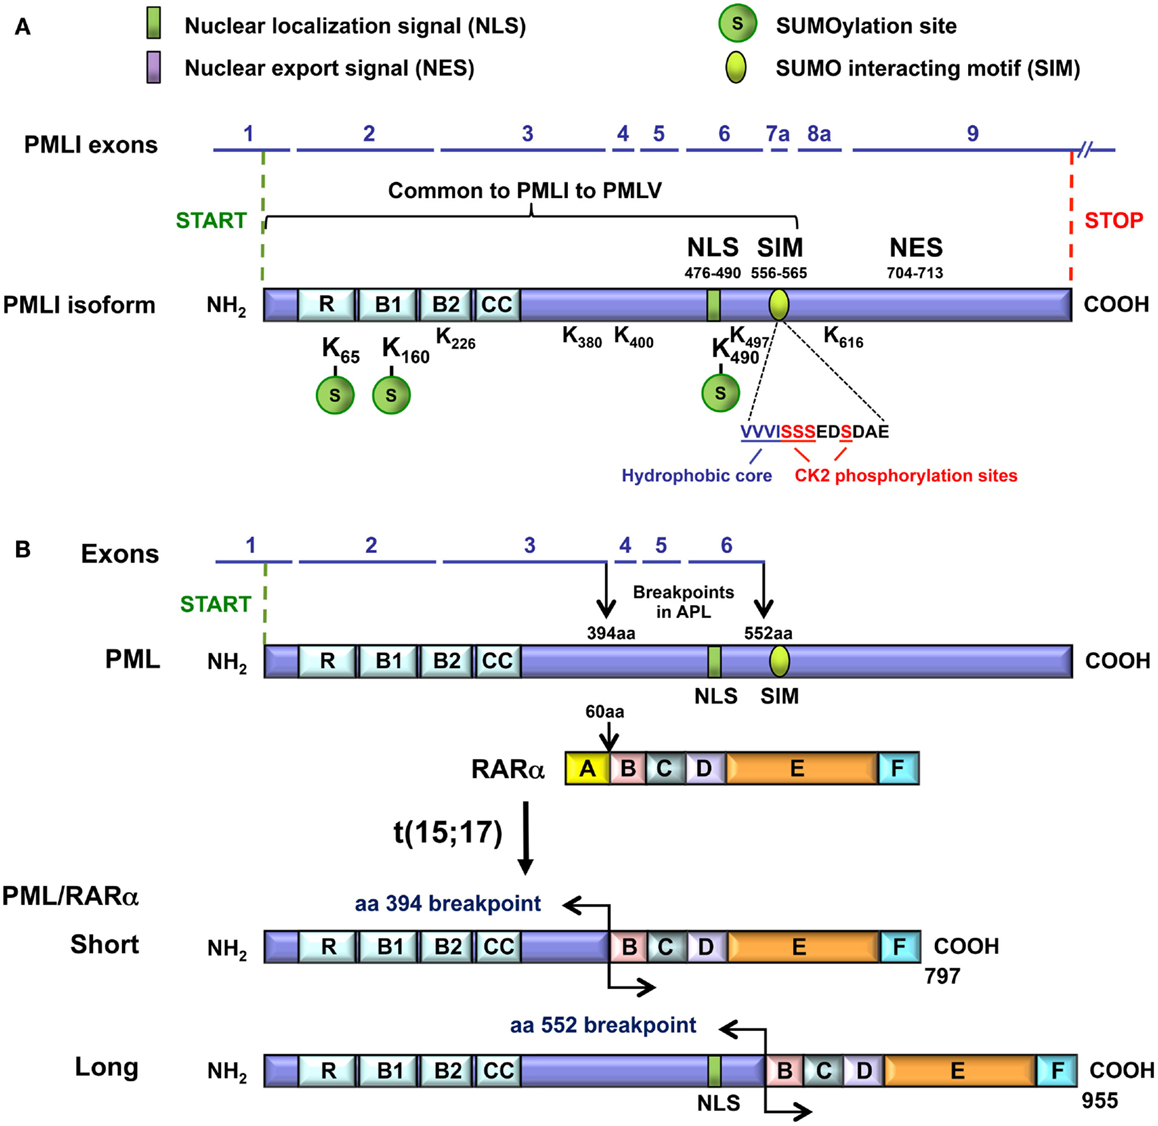 Pml Protein And The Pml-rarα Proteins